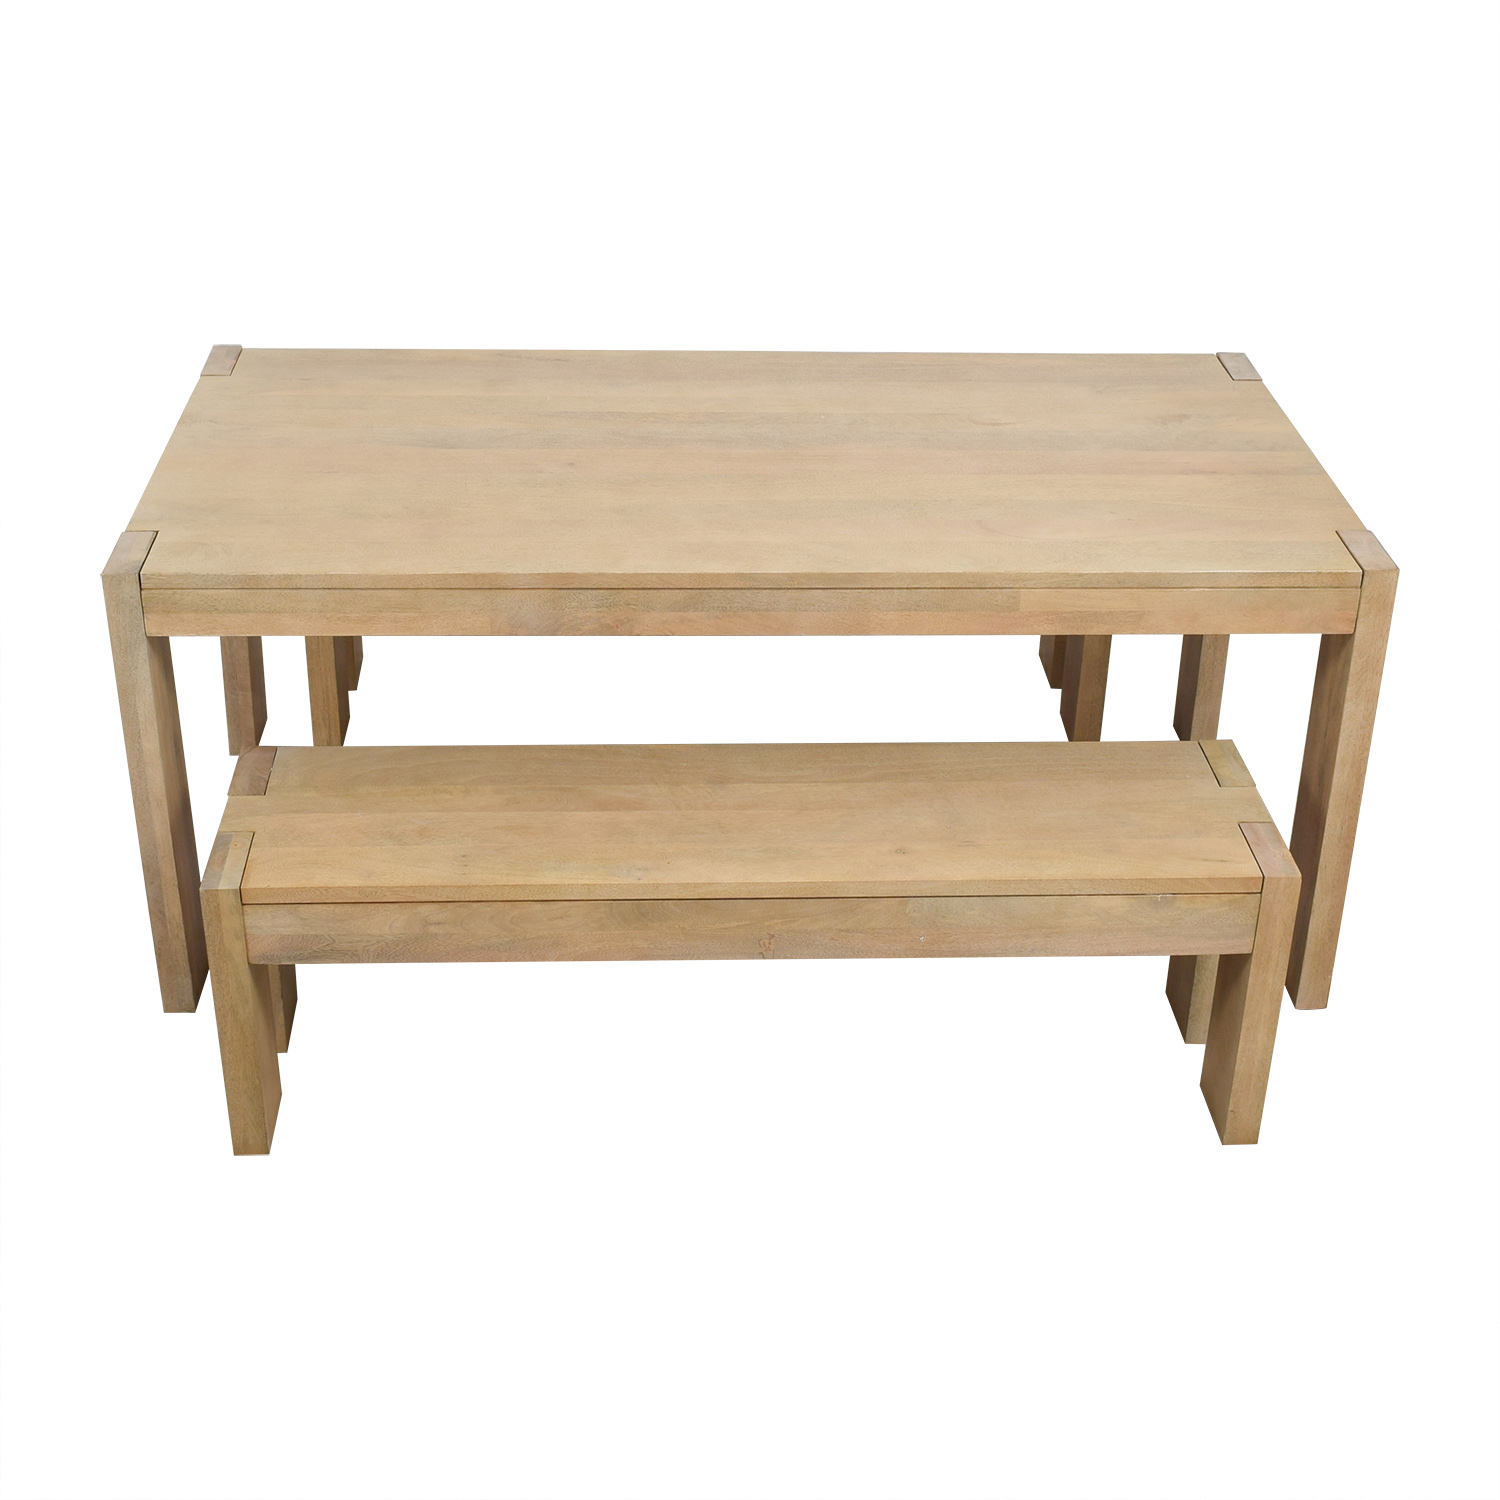 West Elm West Elm Boerum Dining Table and Benches price